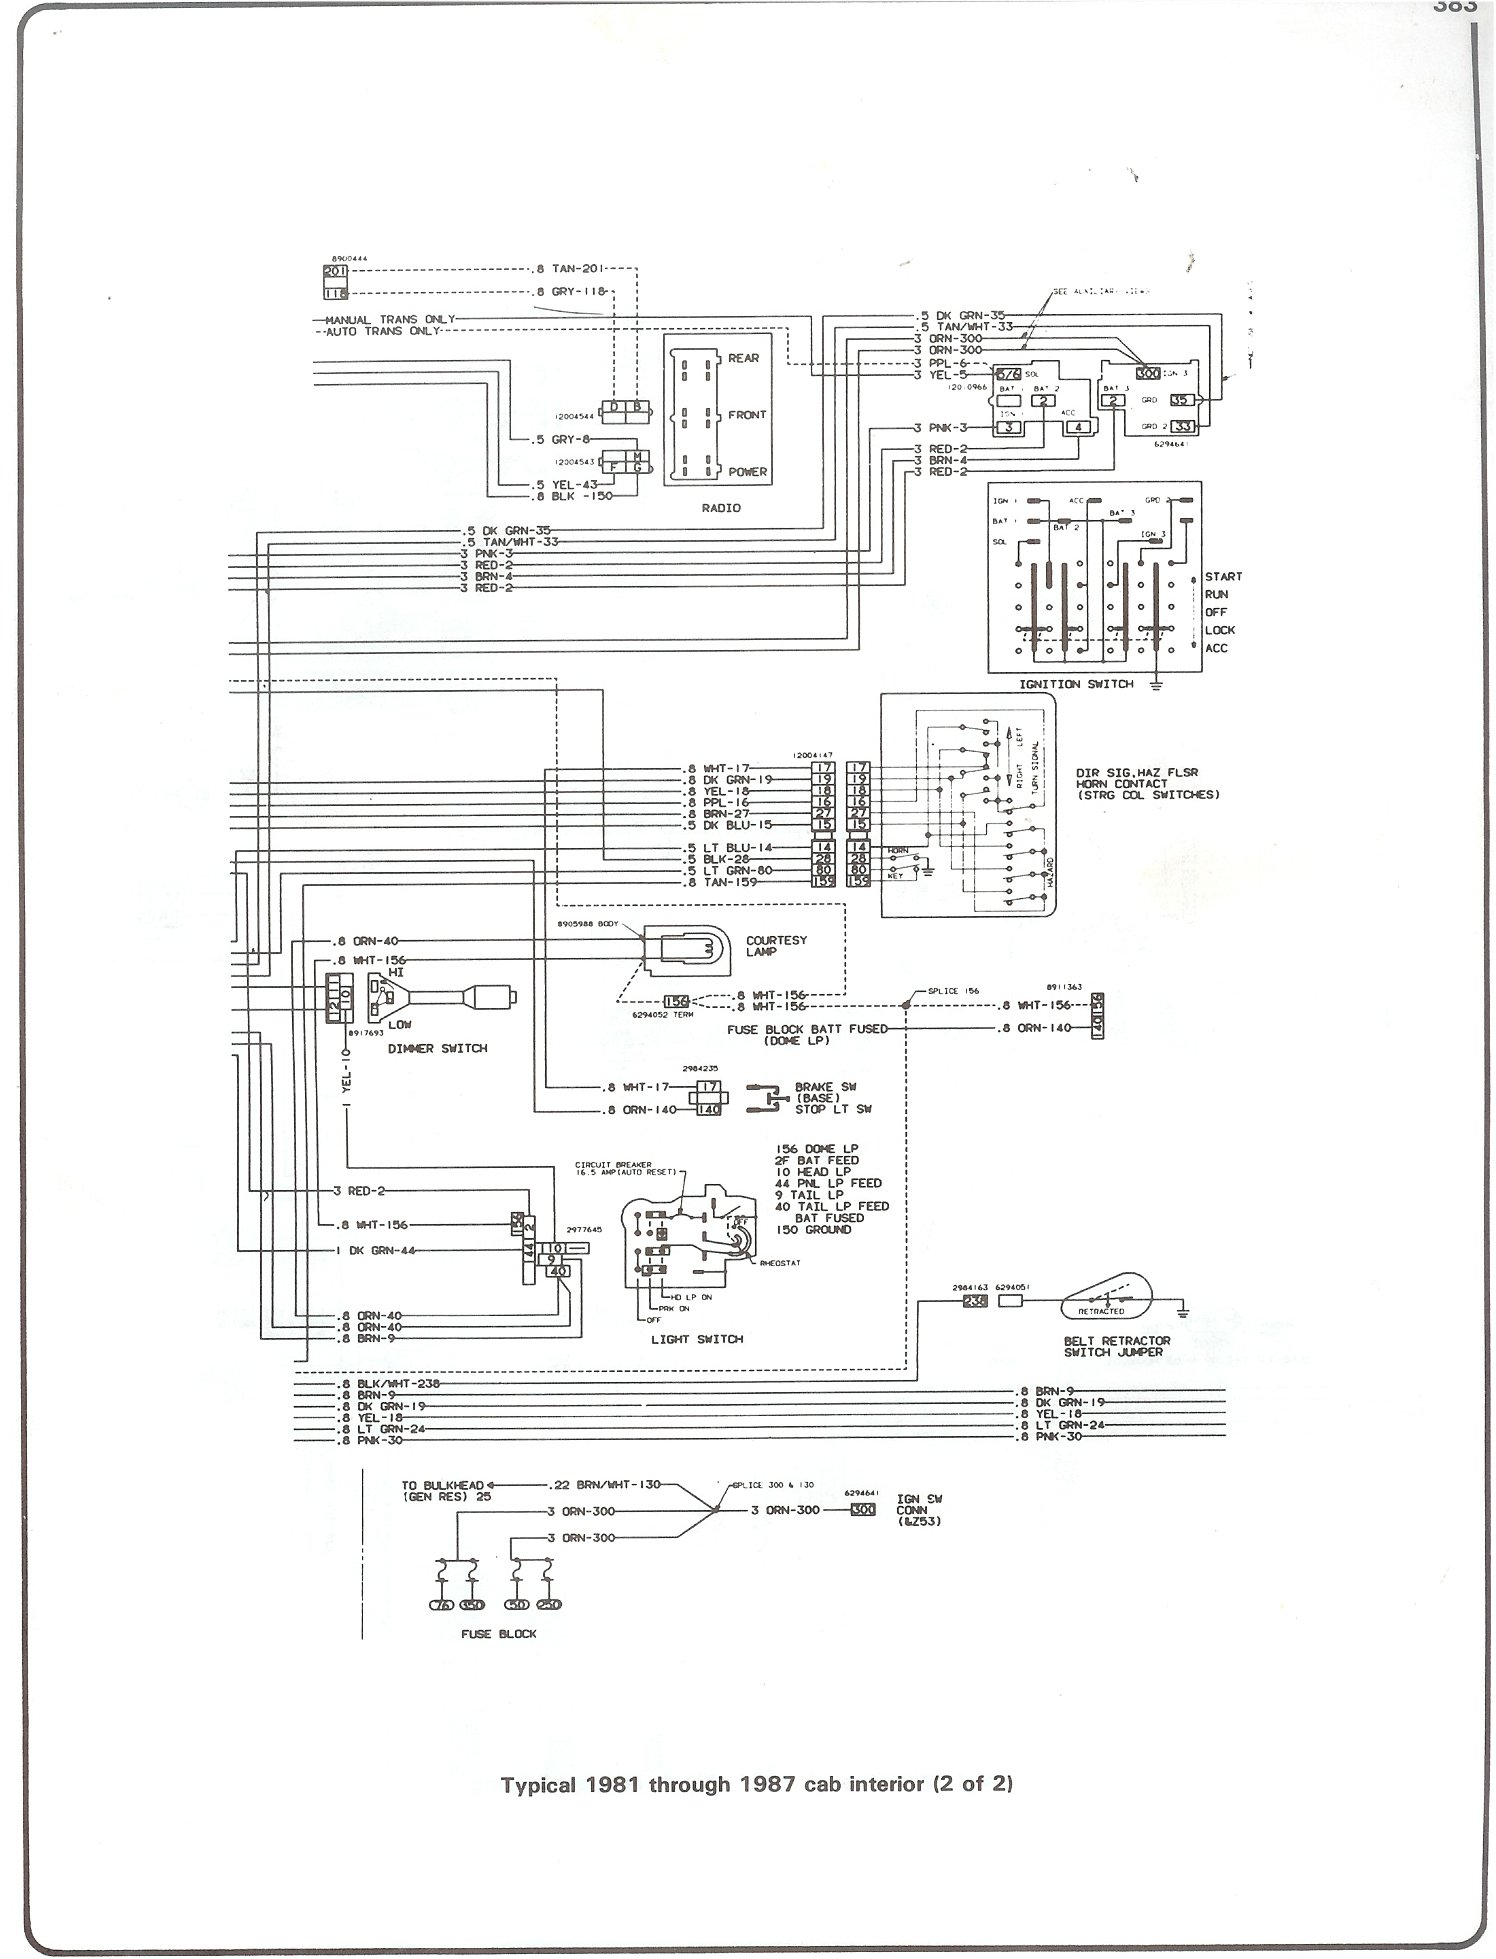 1996 Gmc Sierra Fuse Diagram Simple Guide About Wiring 1993 1500 Box Complete 73 87 Diagrams Location Headlight